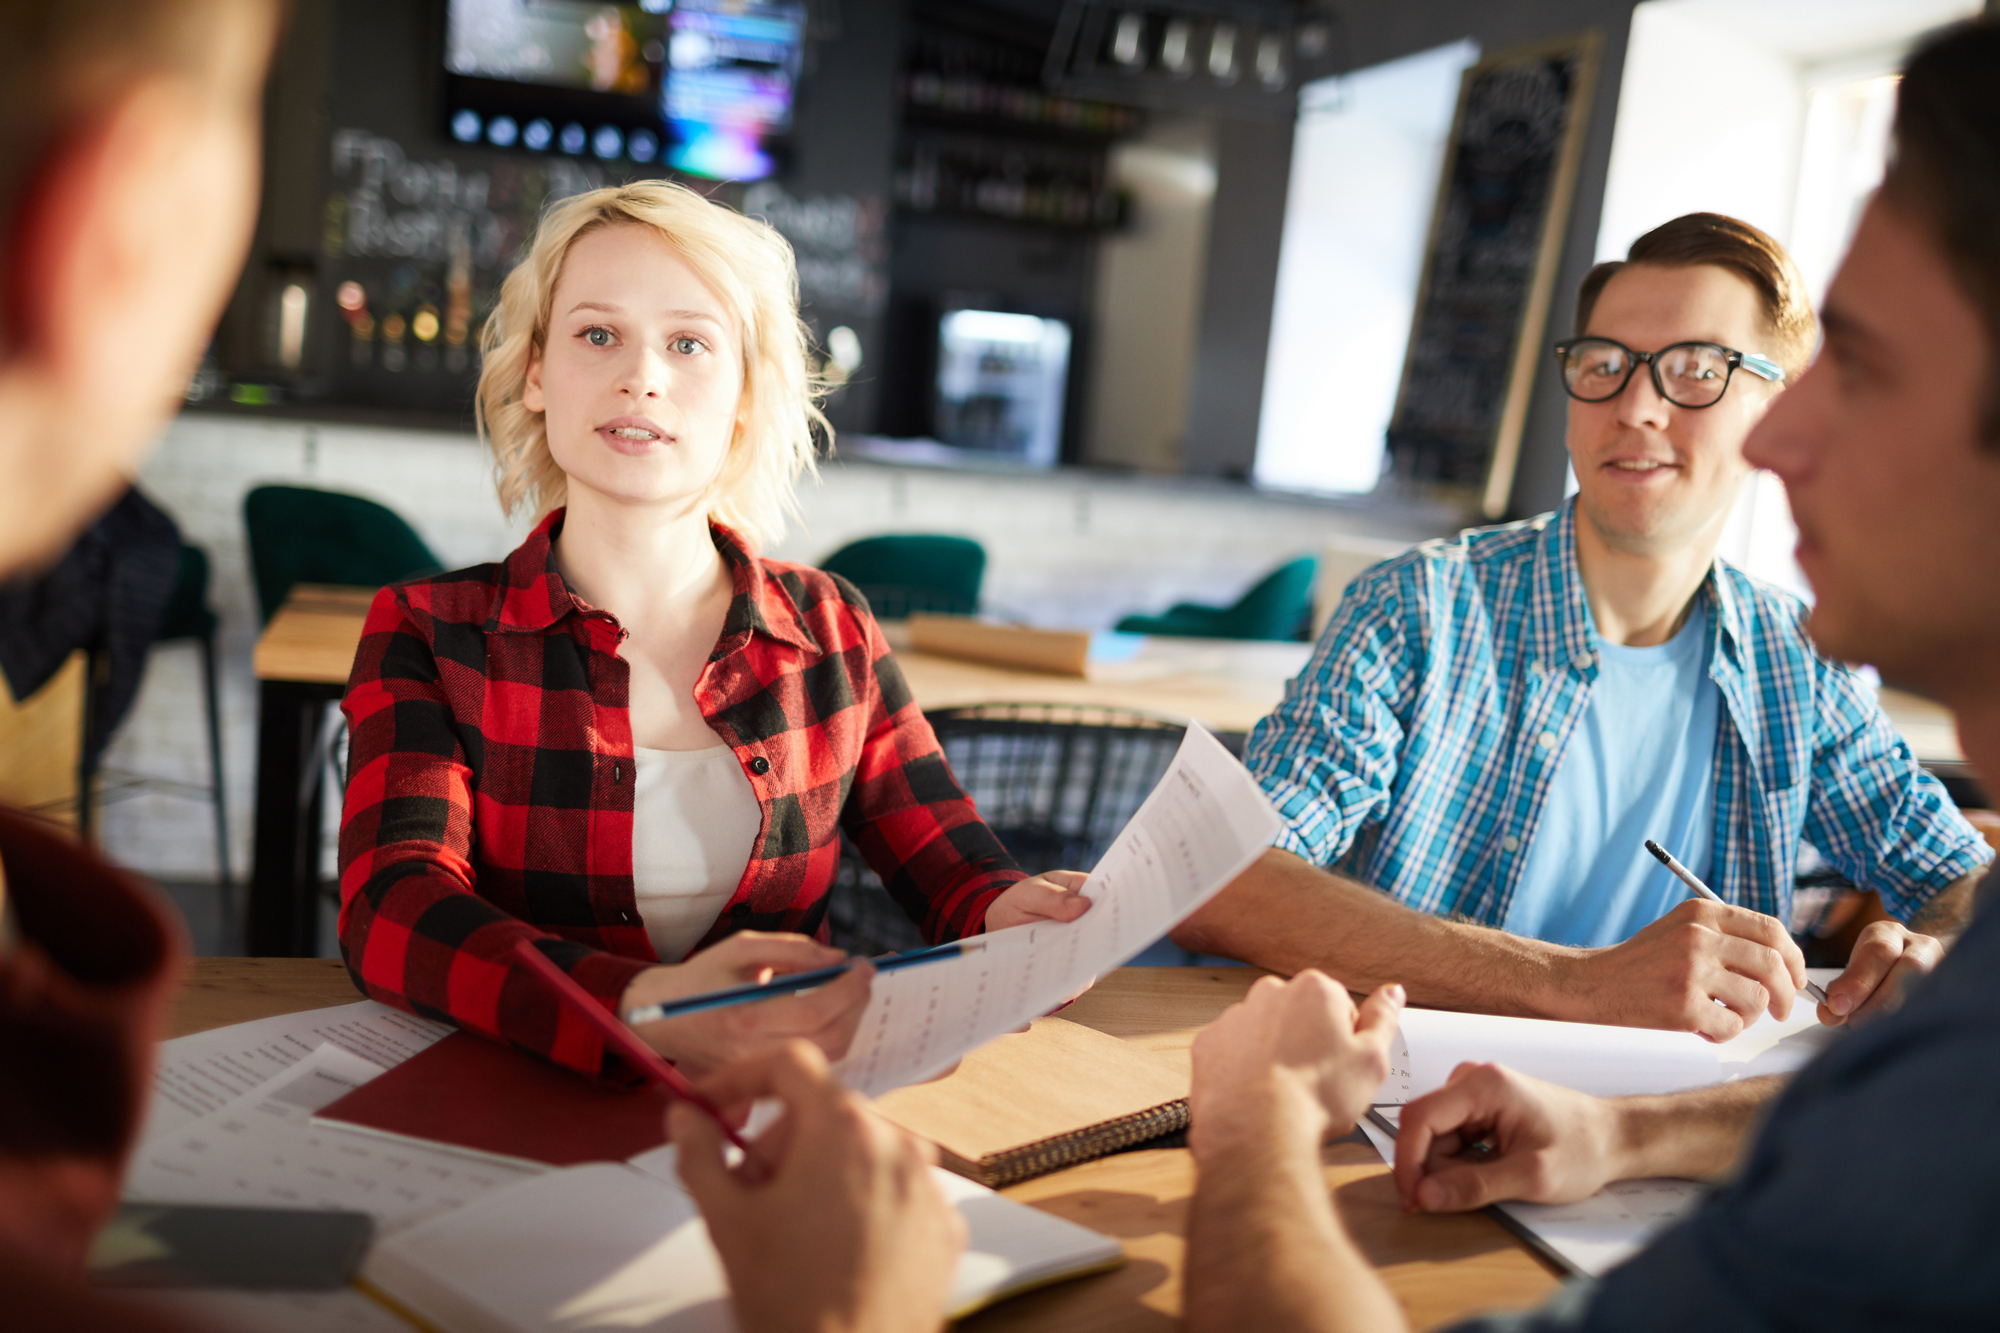 Group of young business professionals discussing ideas while collaborating on startup project during meeting in modern office, focus on blonde young woman pointing at document